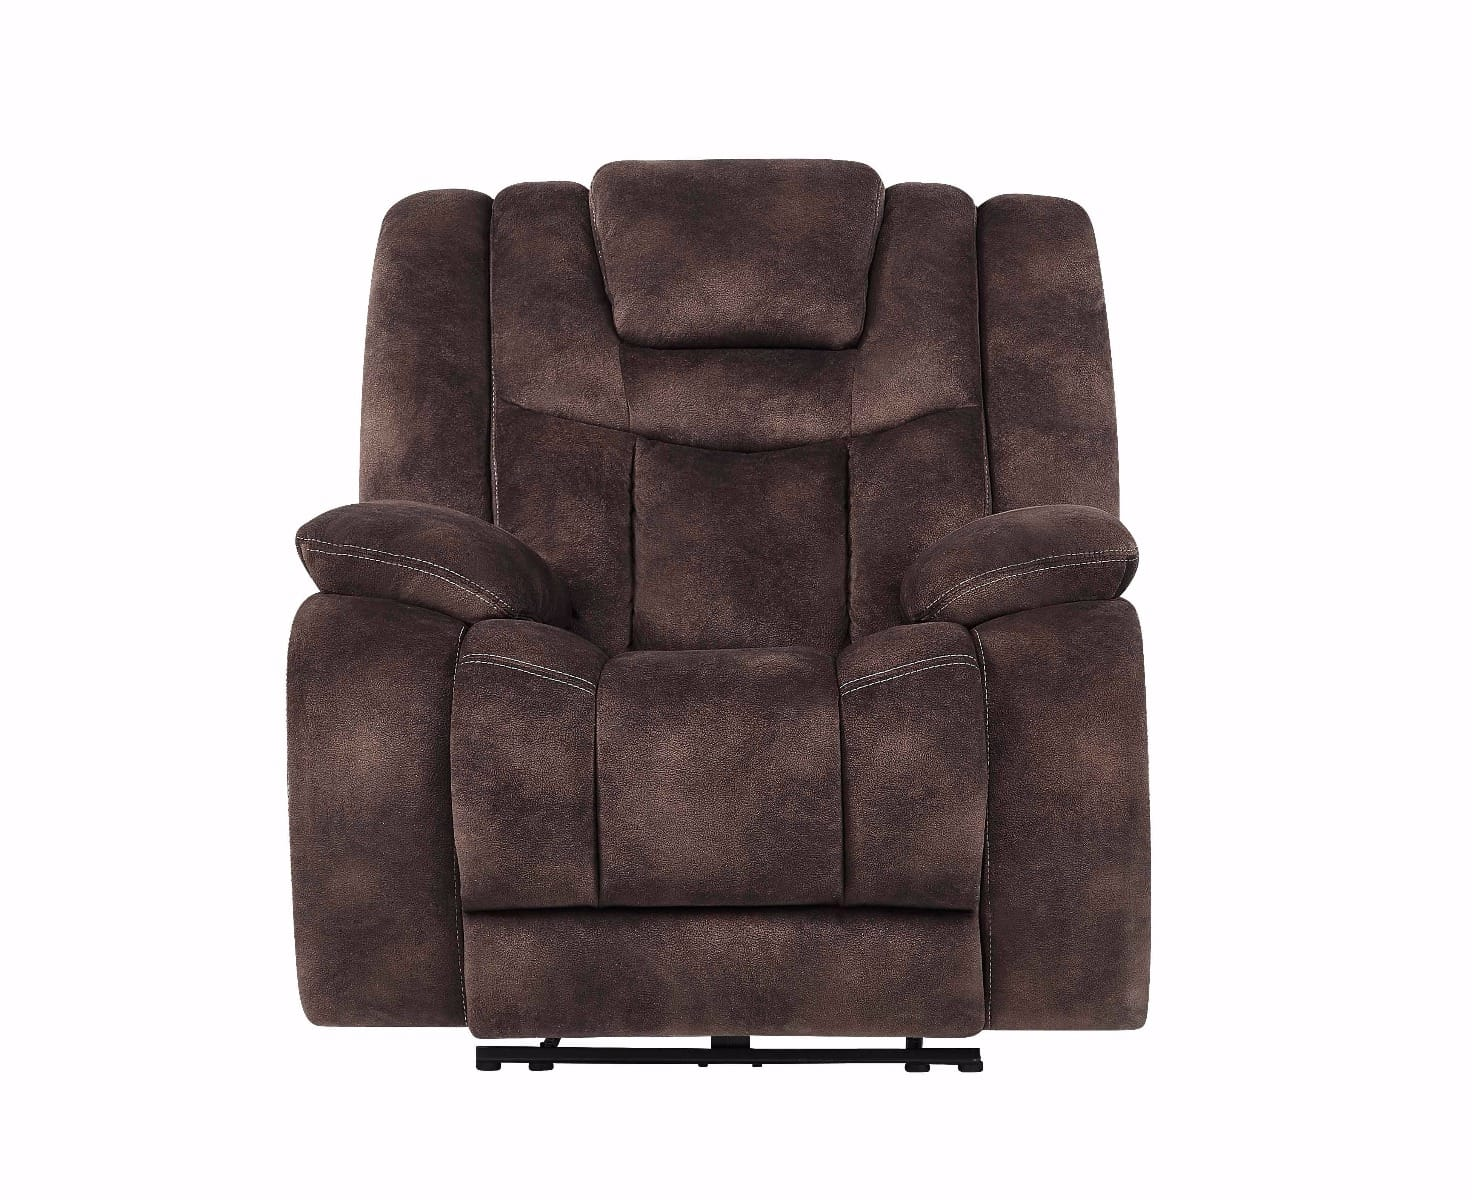 Phenomenal U1706 Night Range Chocolate Fabric Power Reclining Chair By Global Furniture Ocoug Best Dining Table And Chair Ideas Images Ocougorg